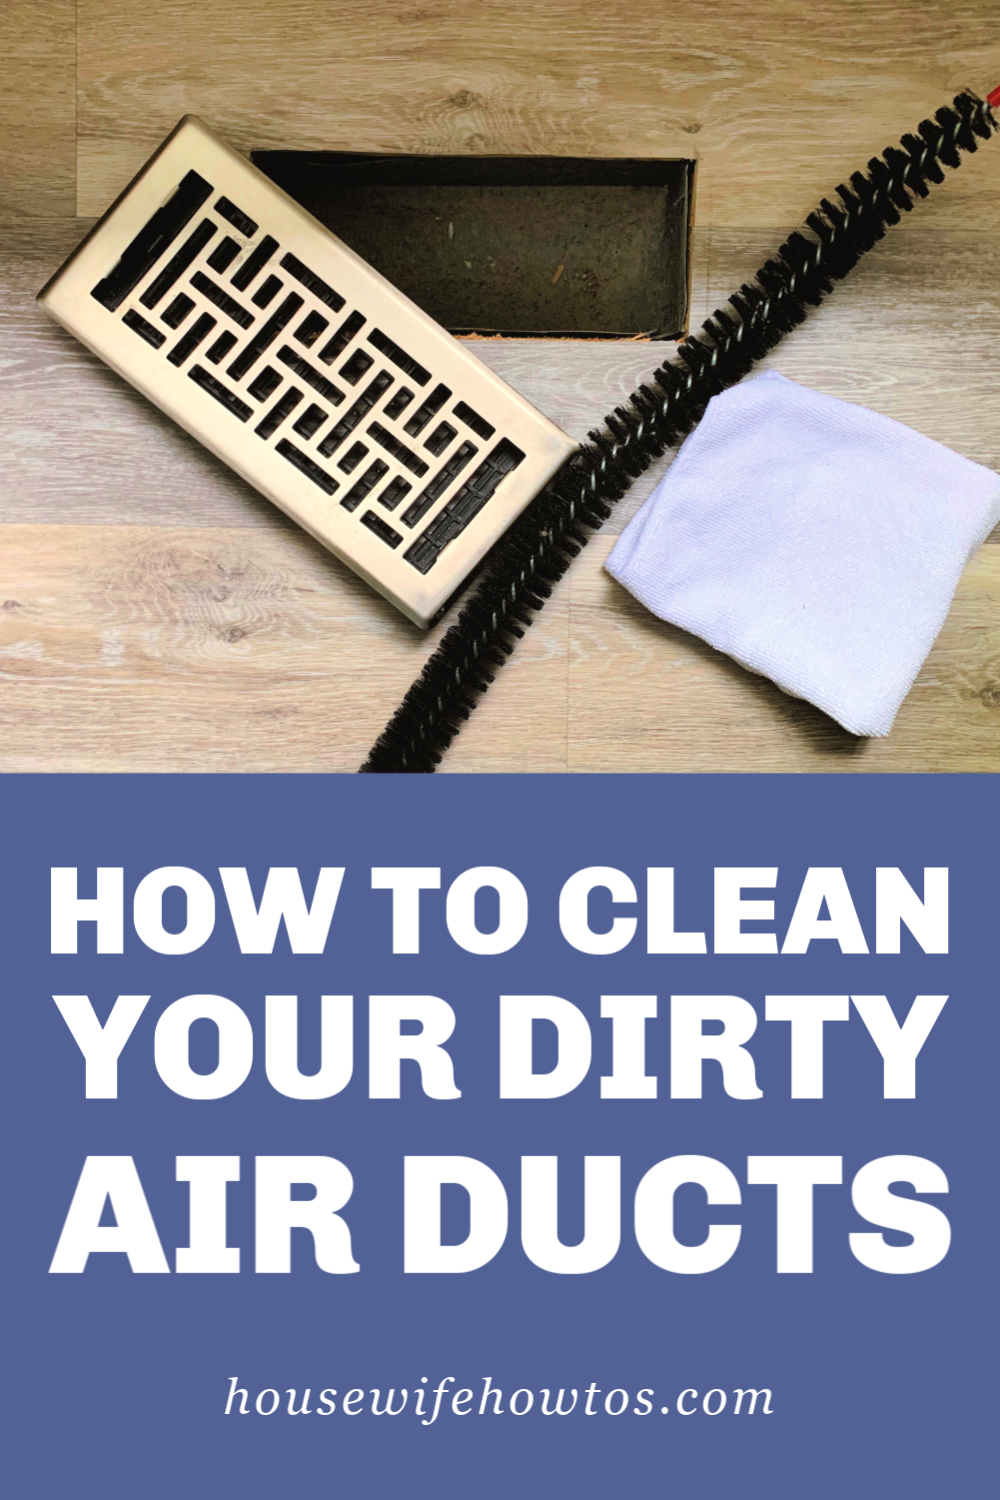 Pin on Cleaning Tips and Recipes